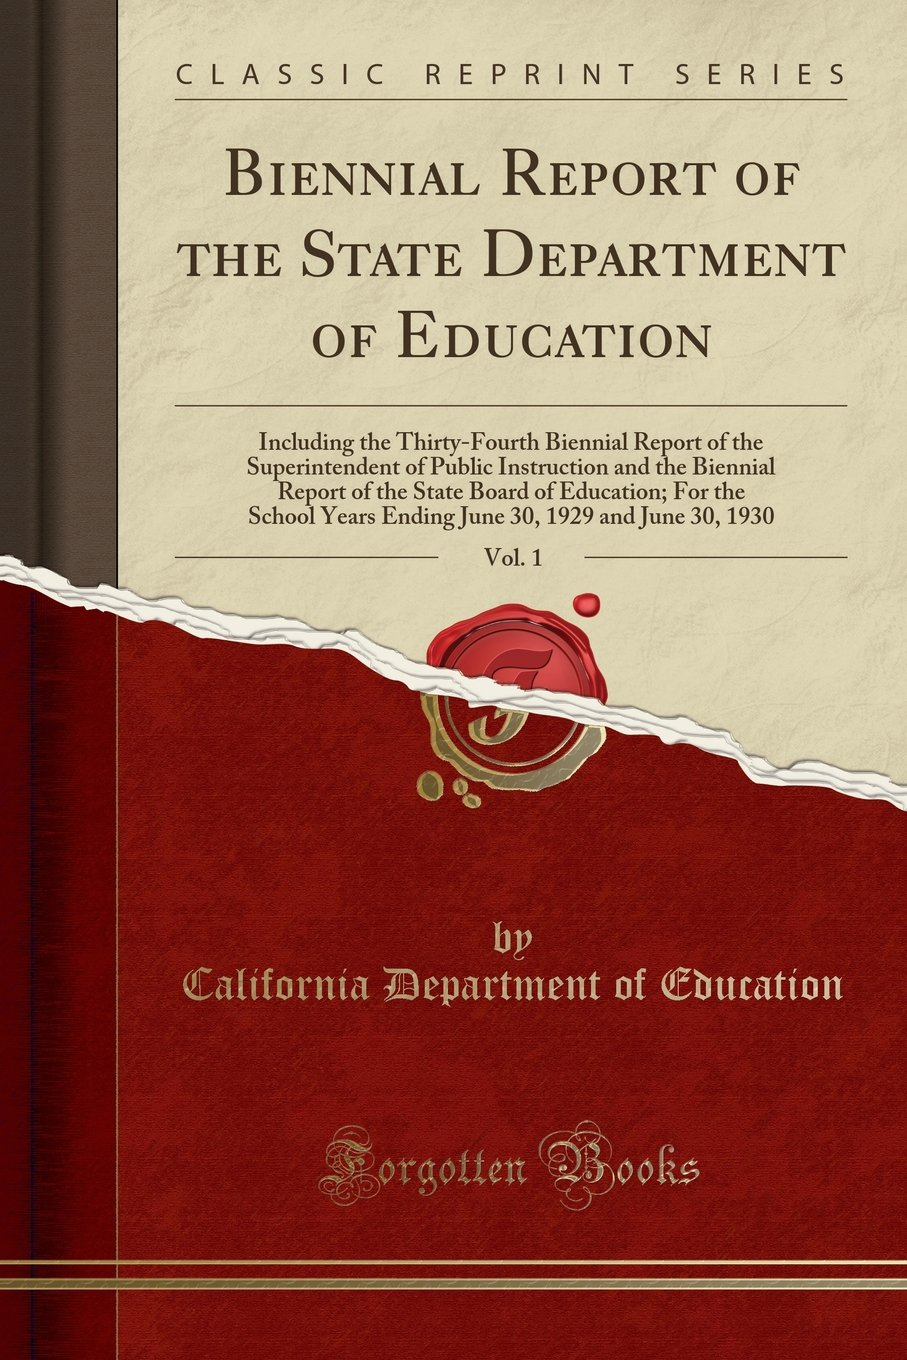 Biennial Report of the State Department of Education, Vol. 1: Including the Thirty-Fourth Biennial Report of the Superintendent of Public Instruction ... the School Years Ending June 30, 1929 and Ju pdf epub